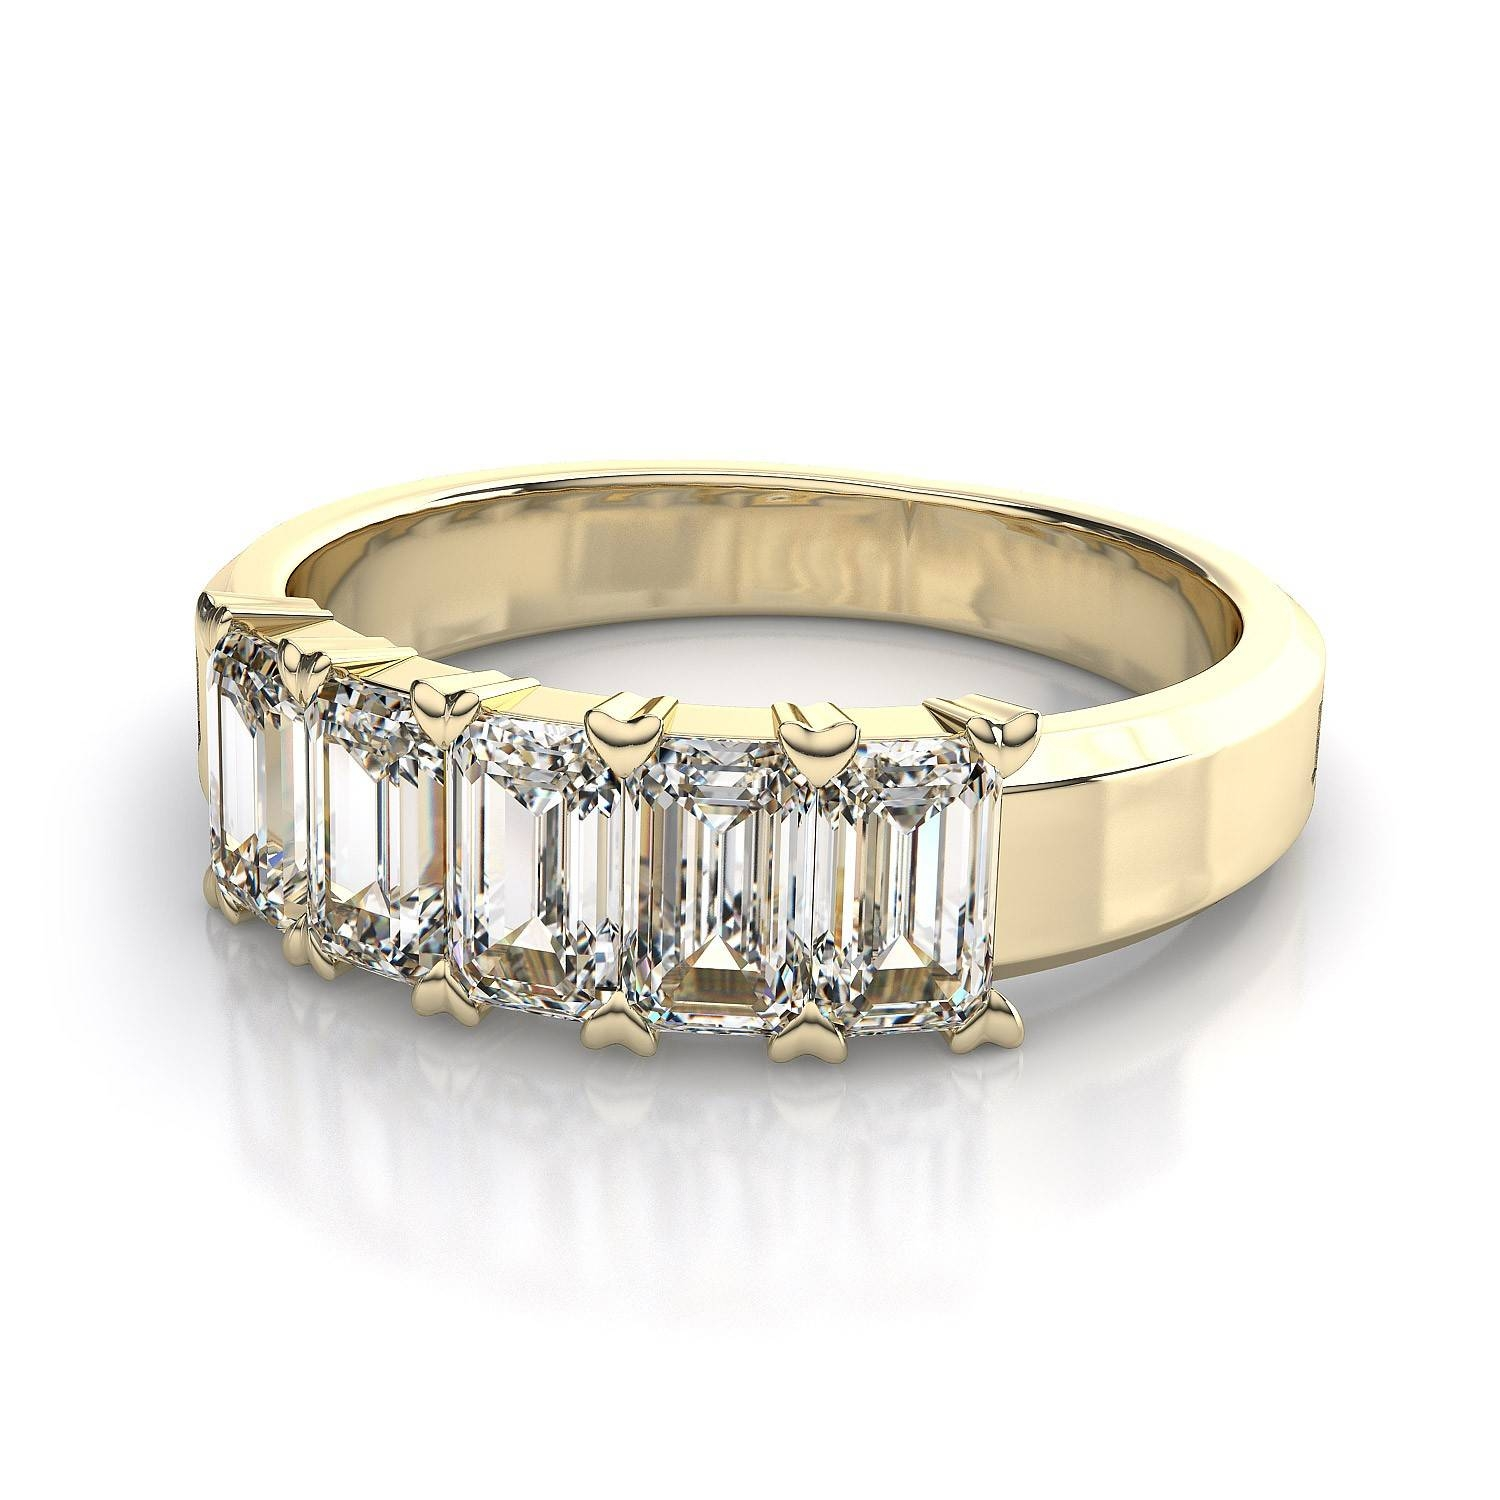 Wedding Rings : Art Deco Anniversary Band 3 Carat Solitaire For Current Anniversary Rings With Baguettes (Gallery 18 of 25)